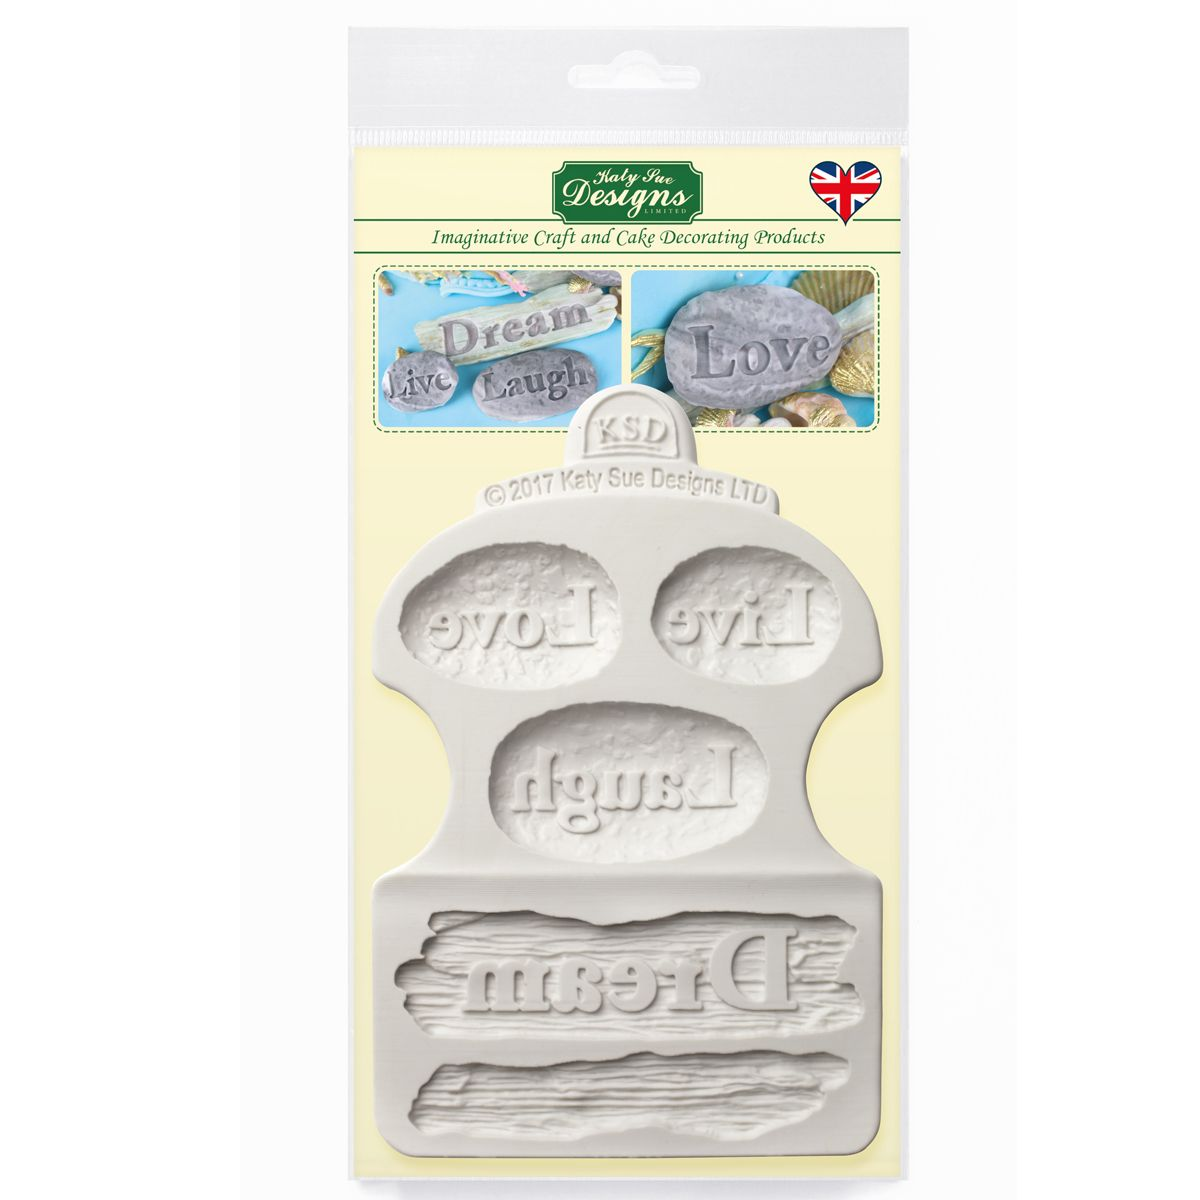 Forma Mould Driftwood a Word Stones CE0071, Katy Sue